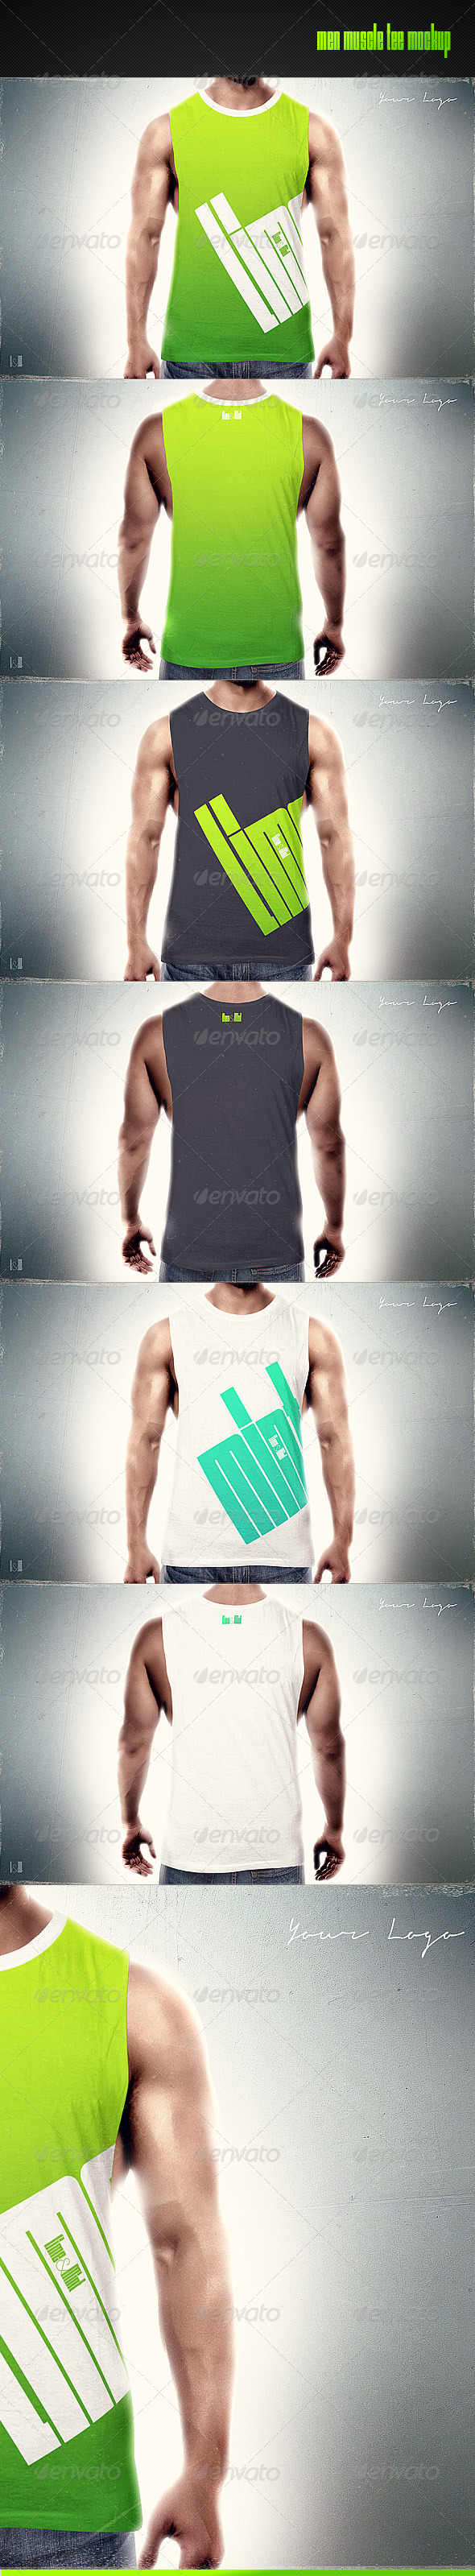 GraphicRiver Men Muscle Tee Mock-up 8286333